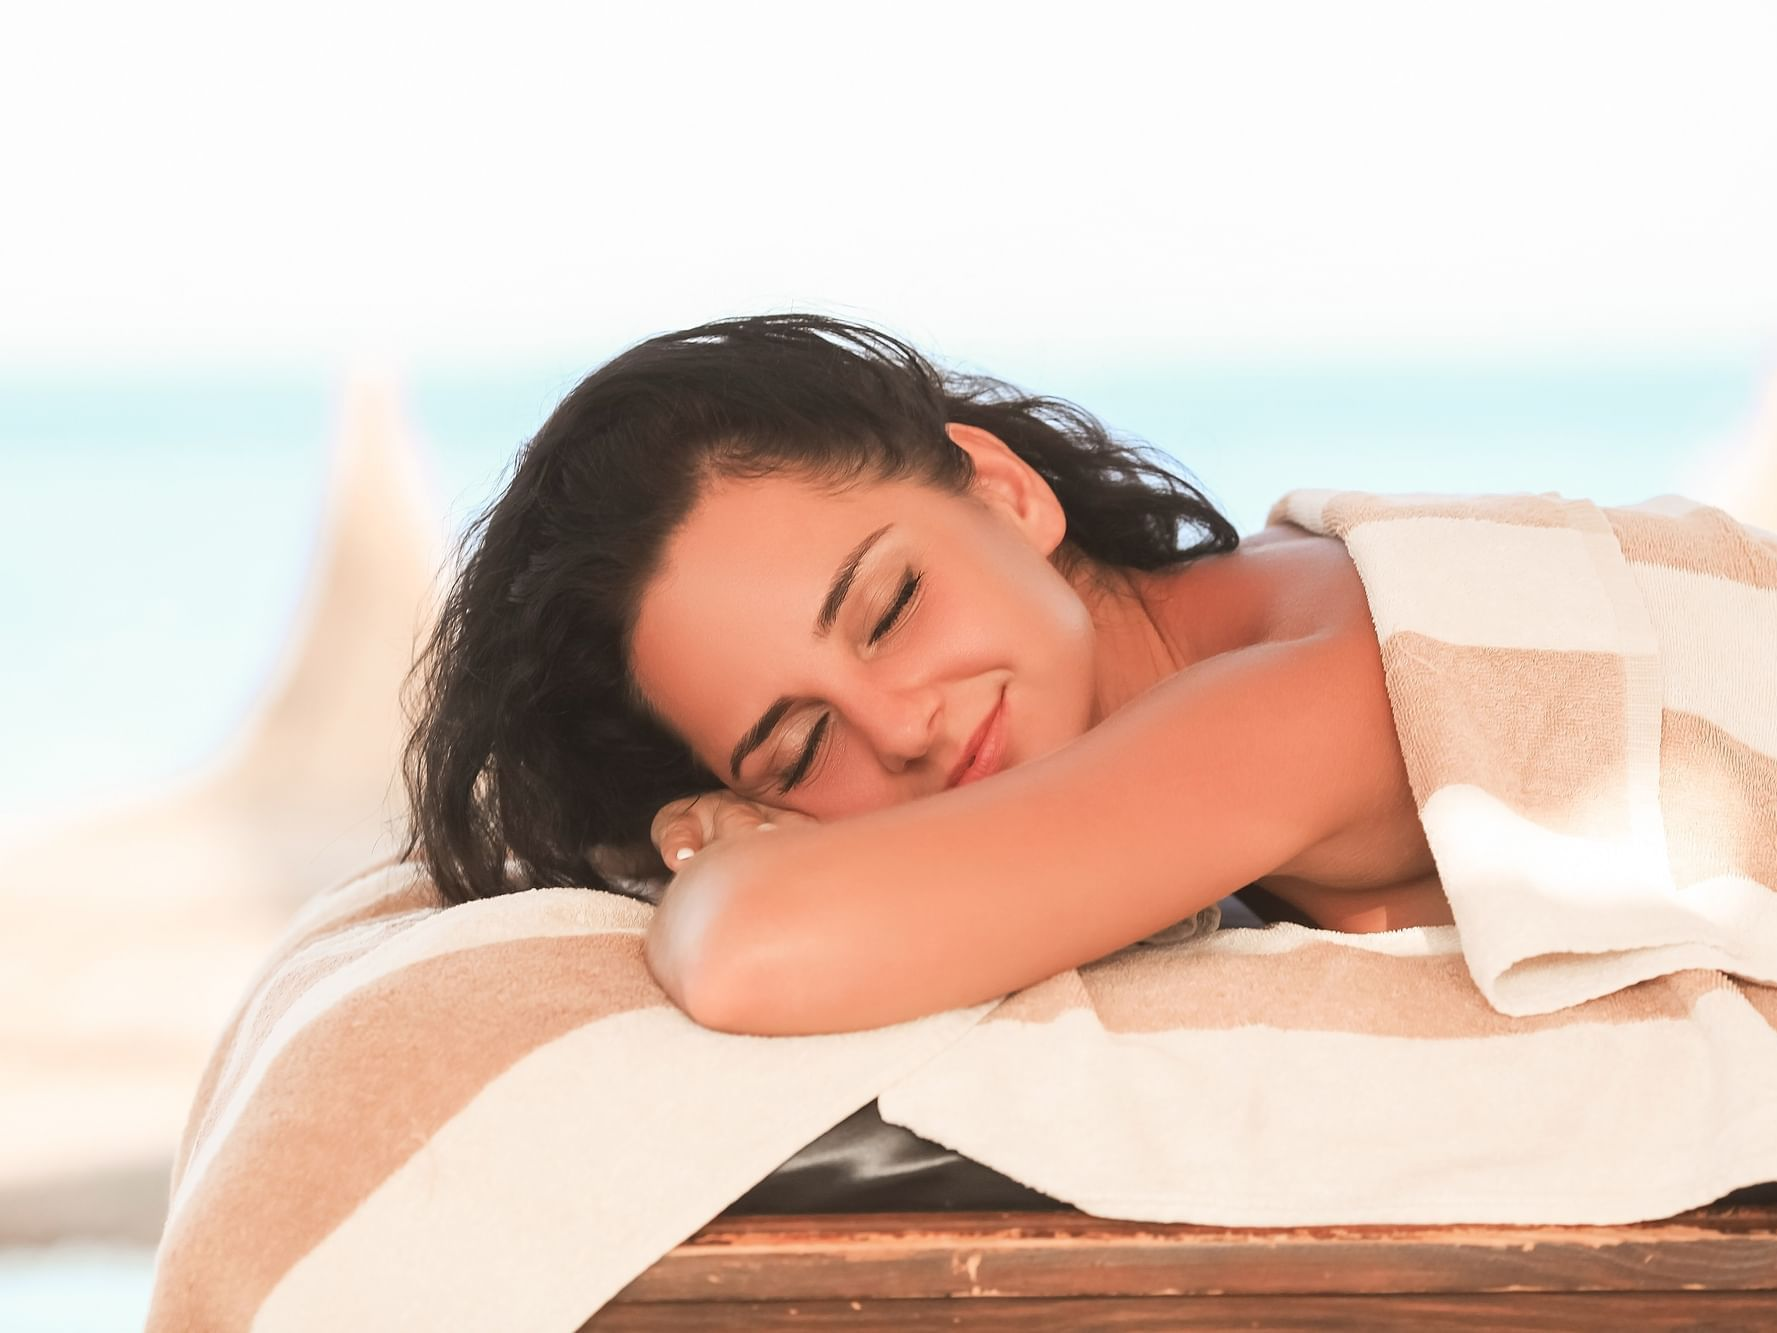 Woman relaxing on outdoor spa bed at Daydream Island Resort